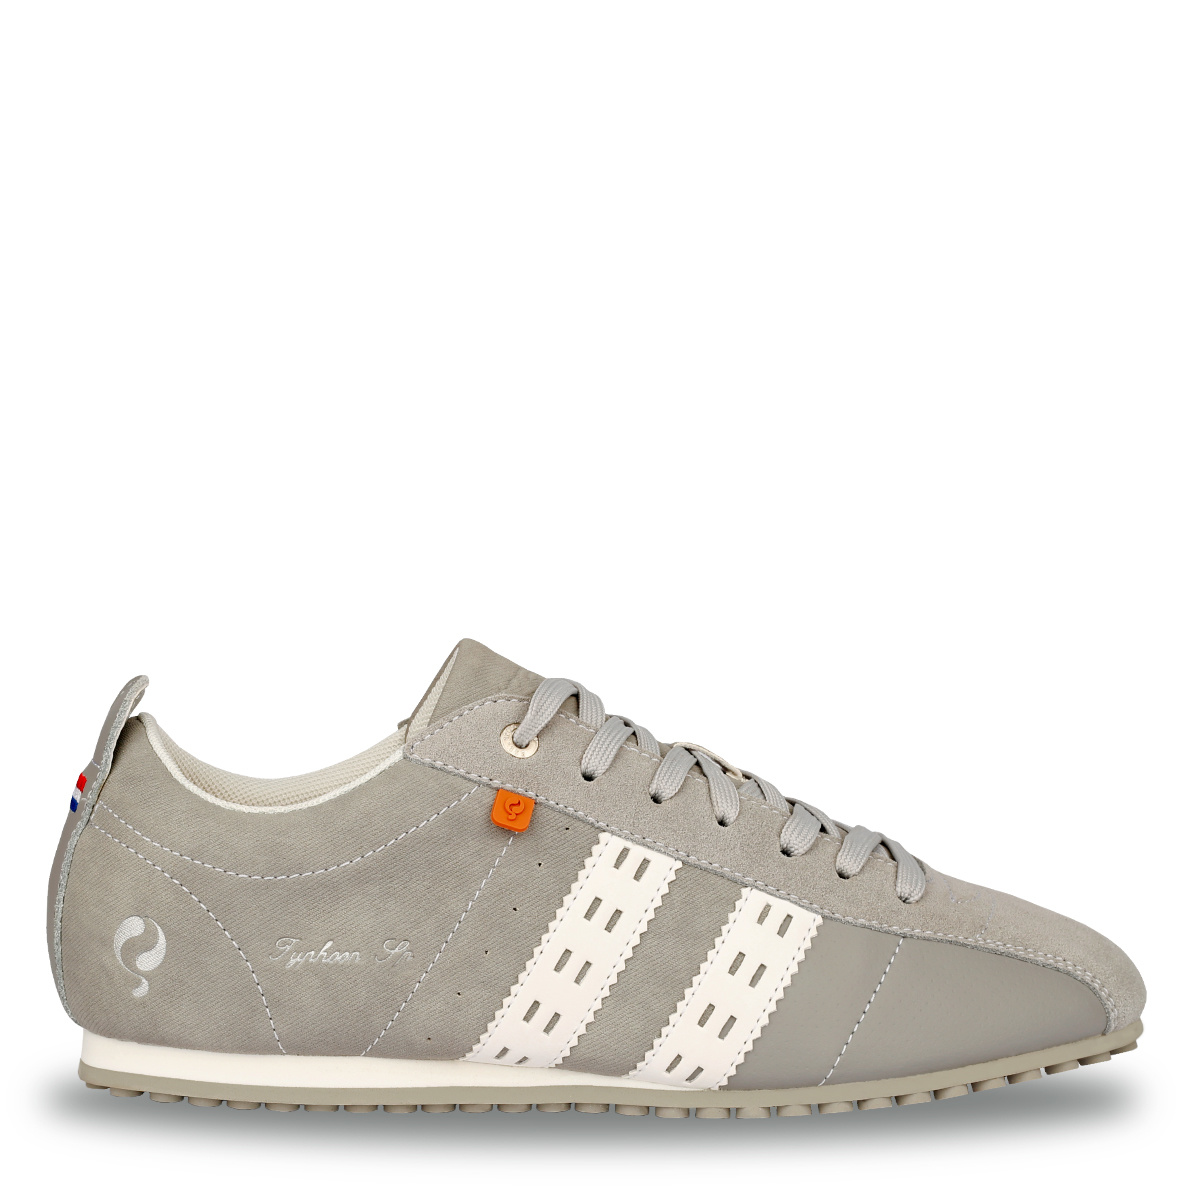 Heren Sneaker Typhoon Sp - Lichtgrijs/Wit